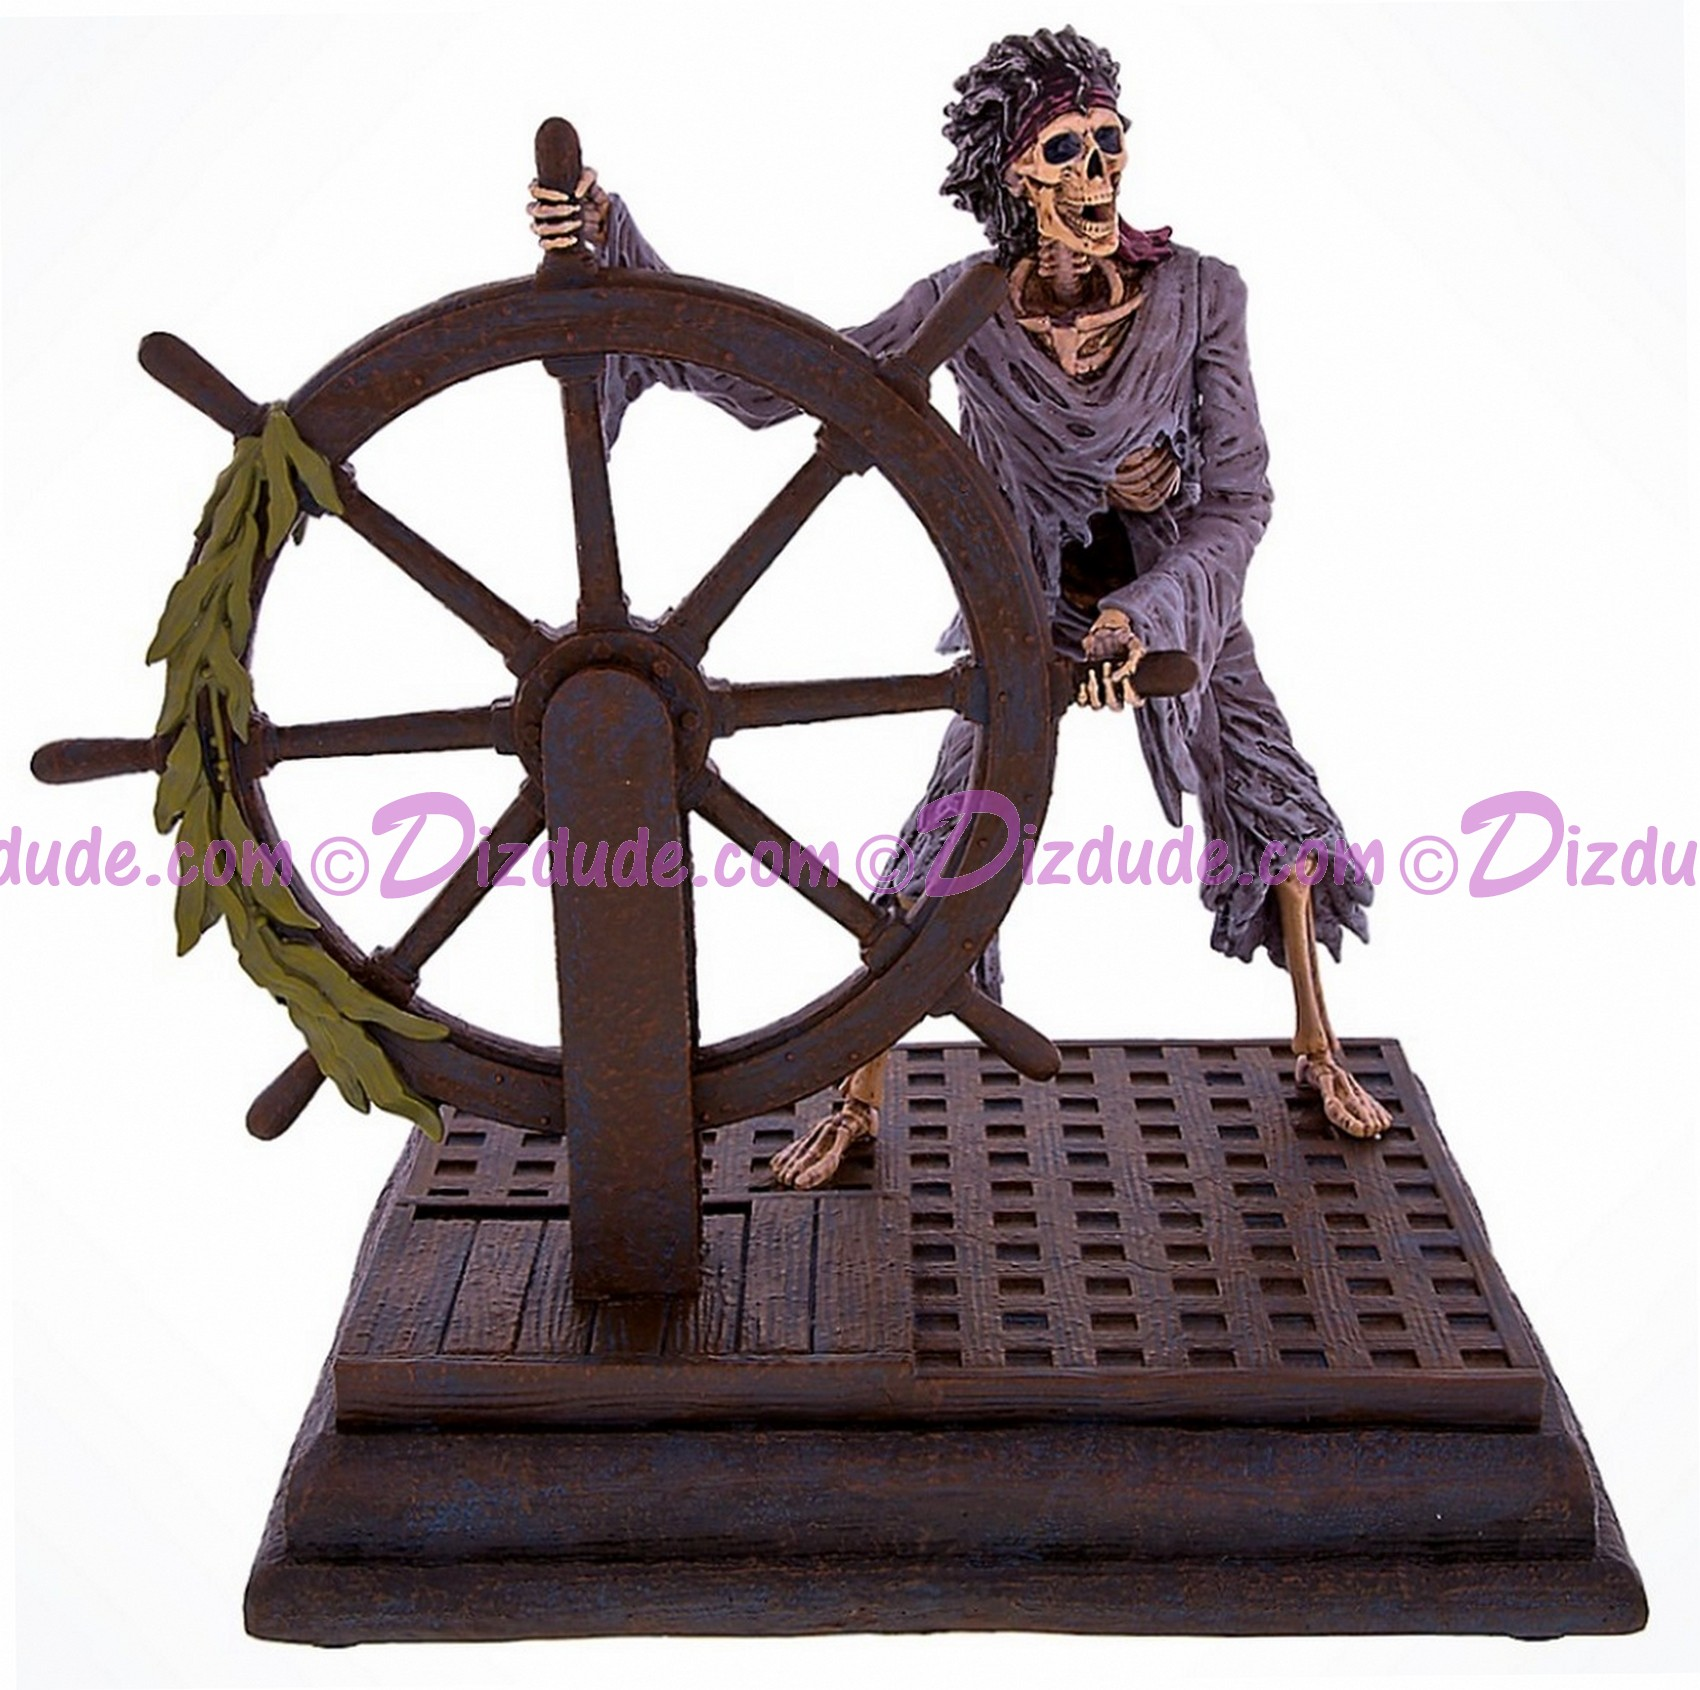 Disney's Pirates of the Caribbean Skeleton Pirate At The Ships Wheel Medium Big Fig © Dizdude.com